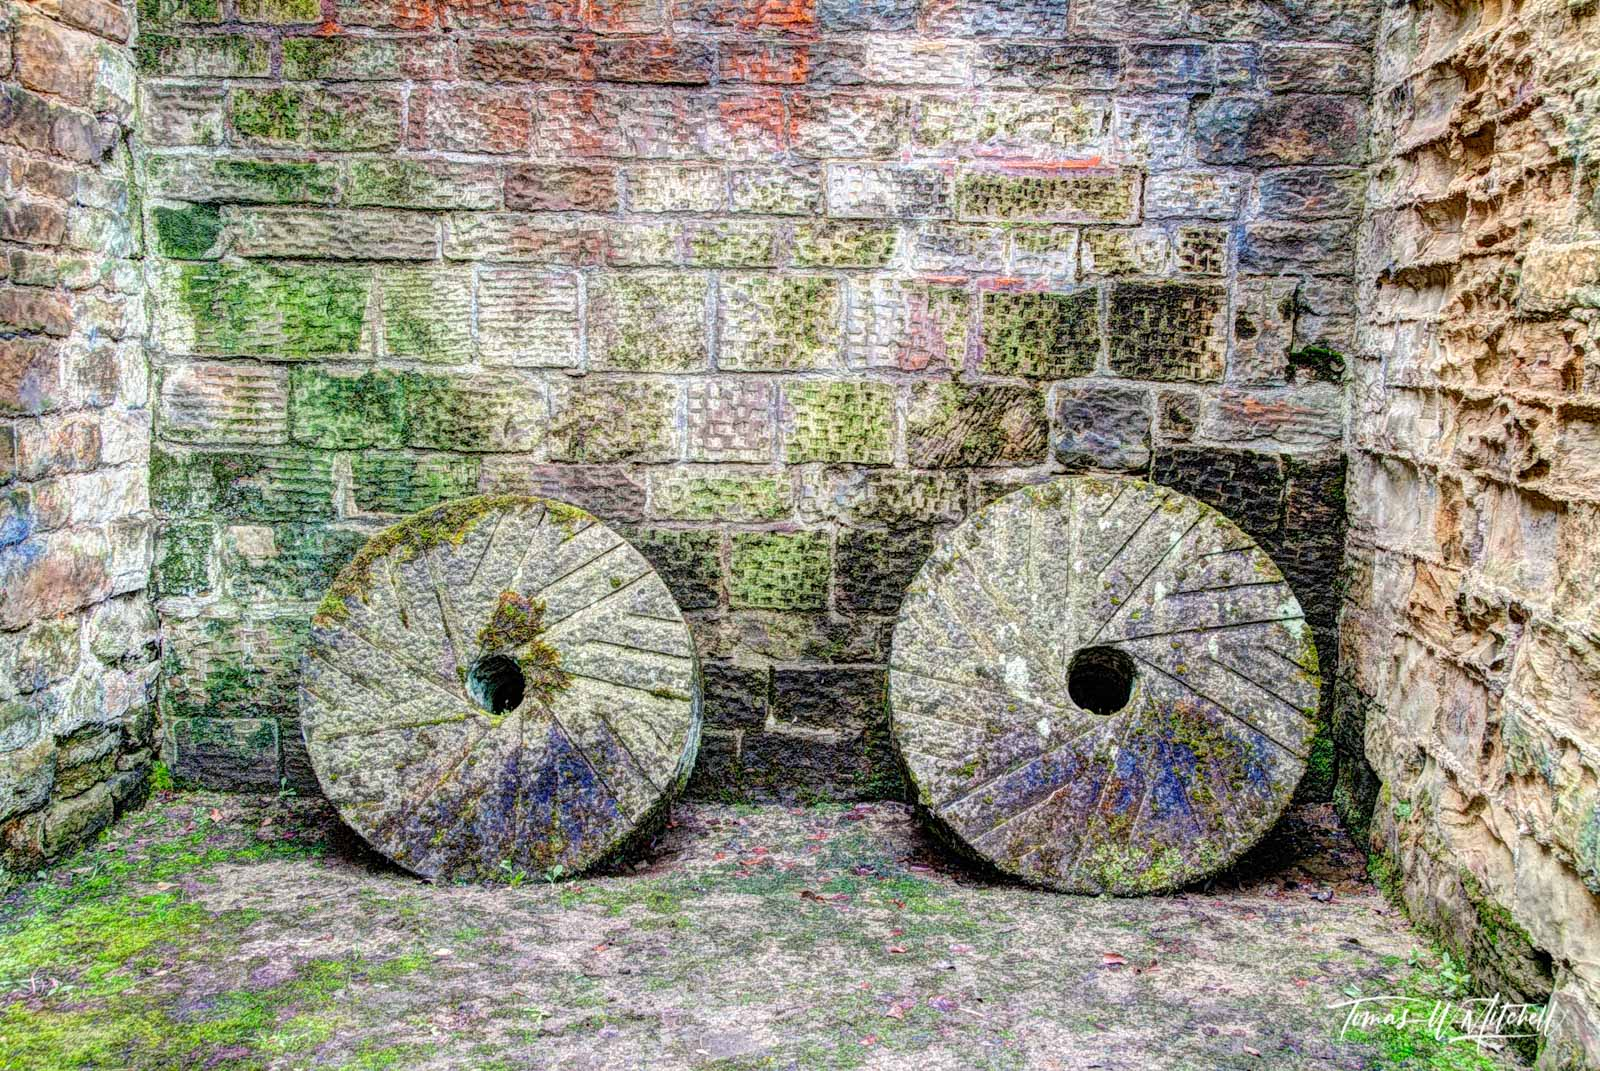 limited edition, museum grade, fine art, prints, old timers, stainsby mill, dirbyshire, england, grinding wheels, color, abstract, old, buildings, mills, rocks, mossy, photo